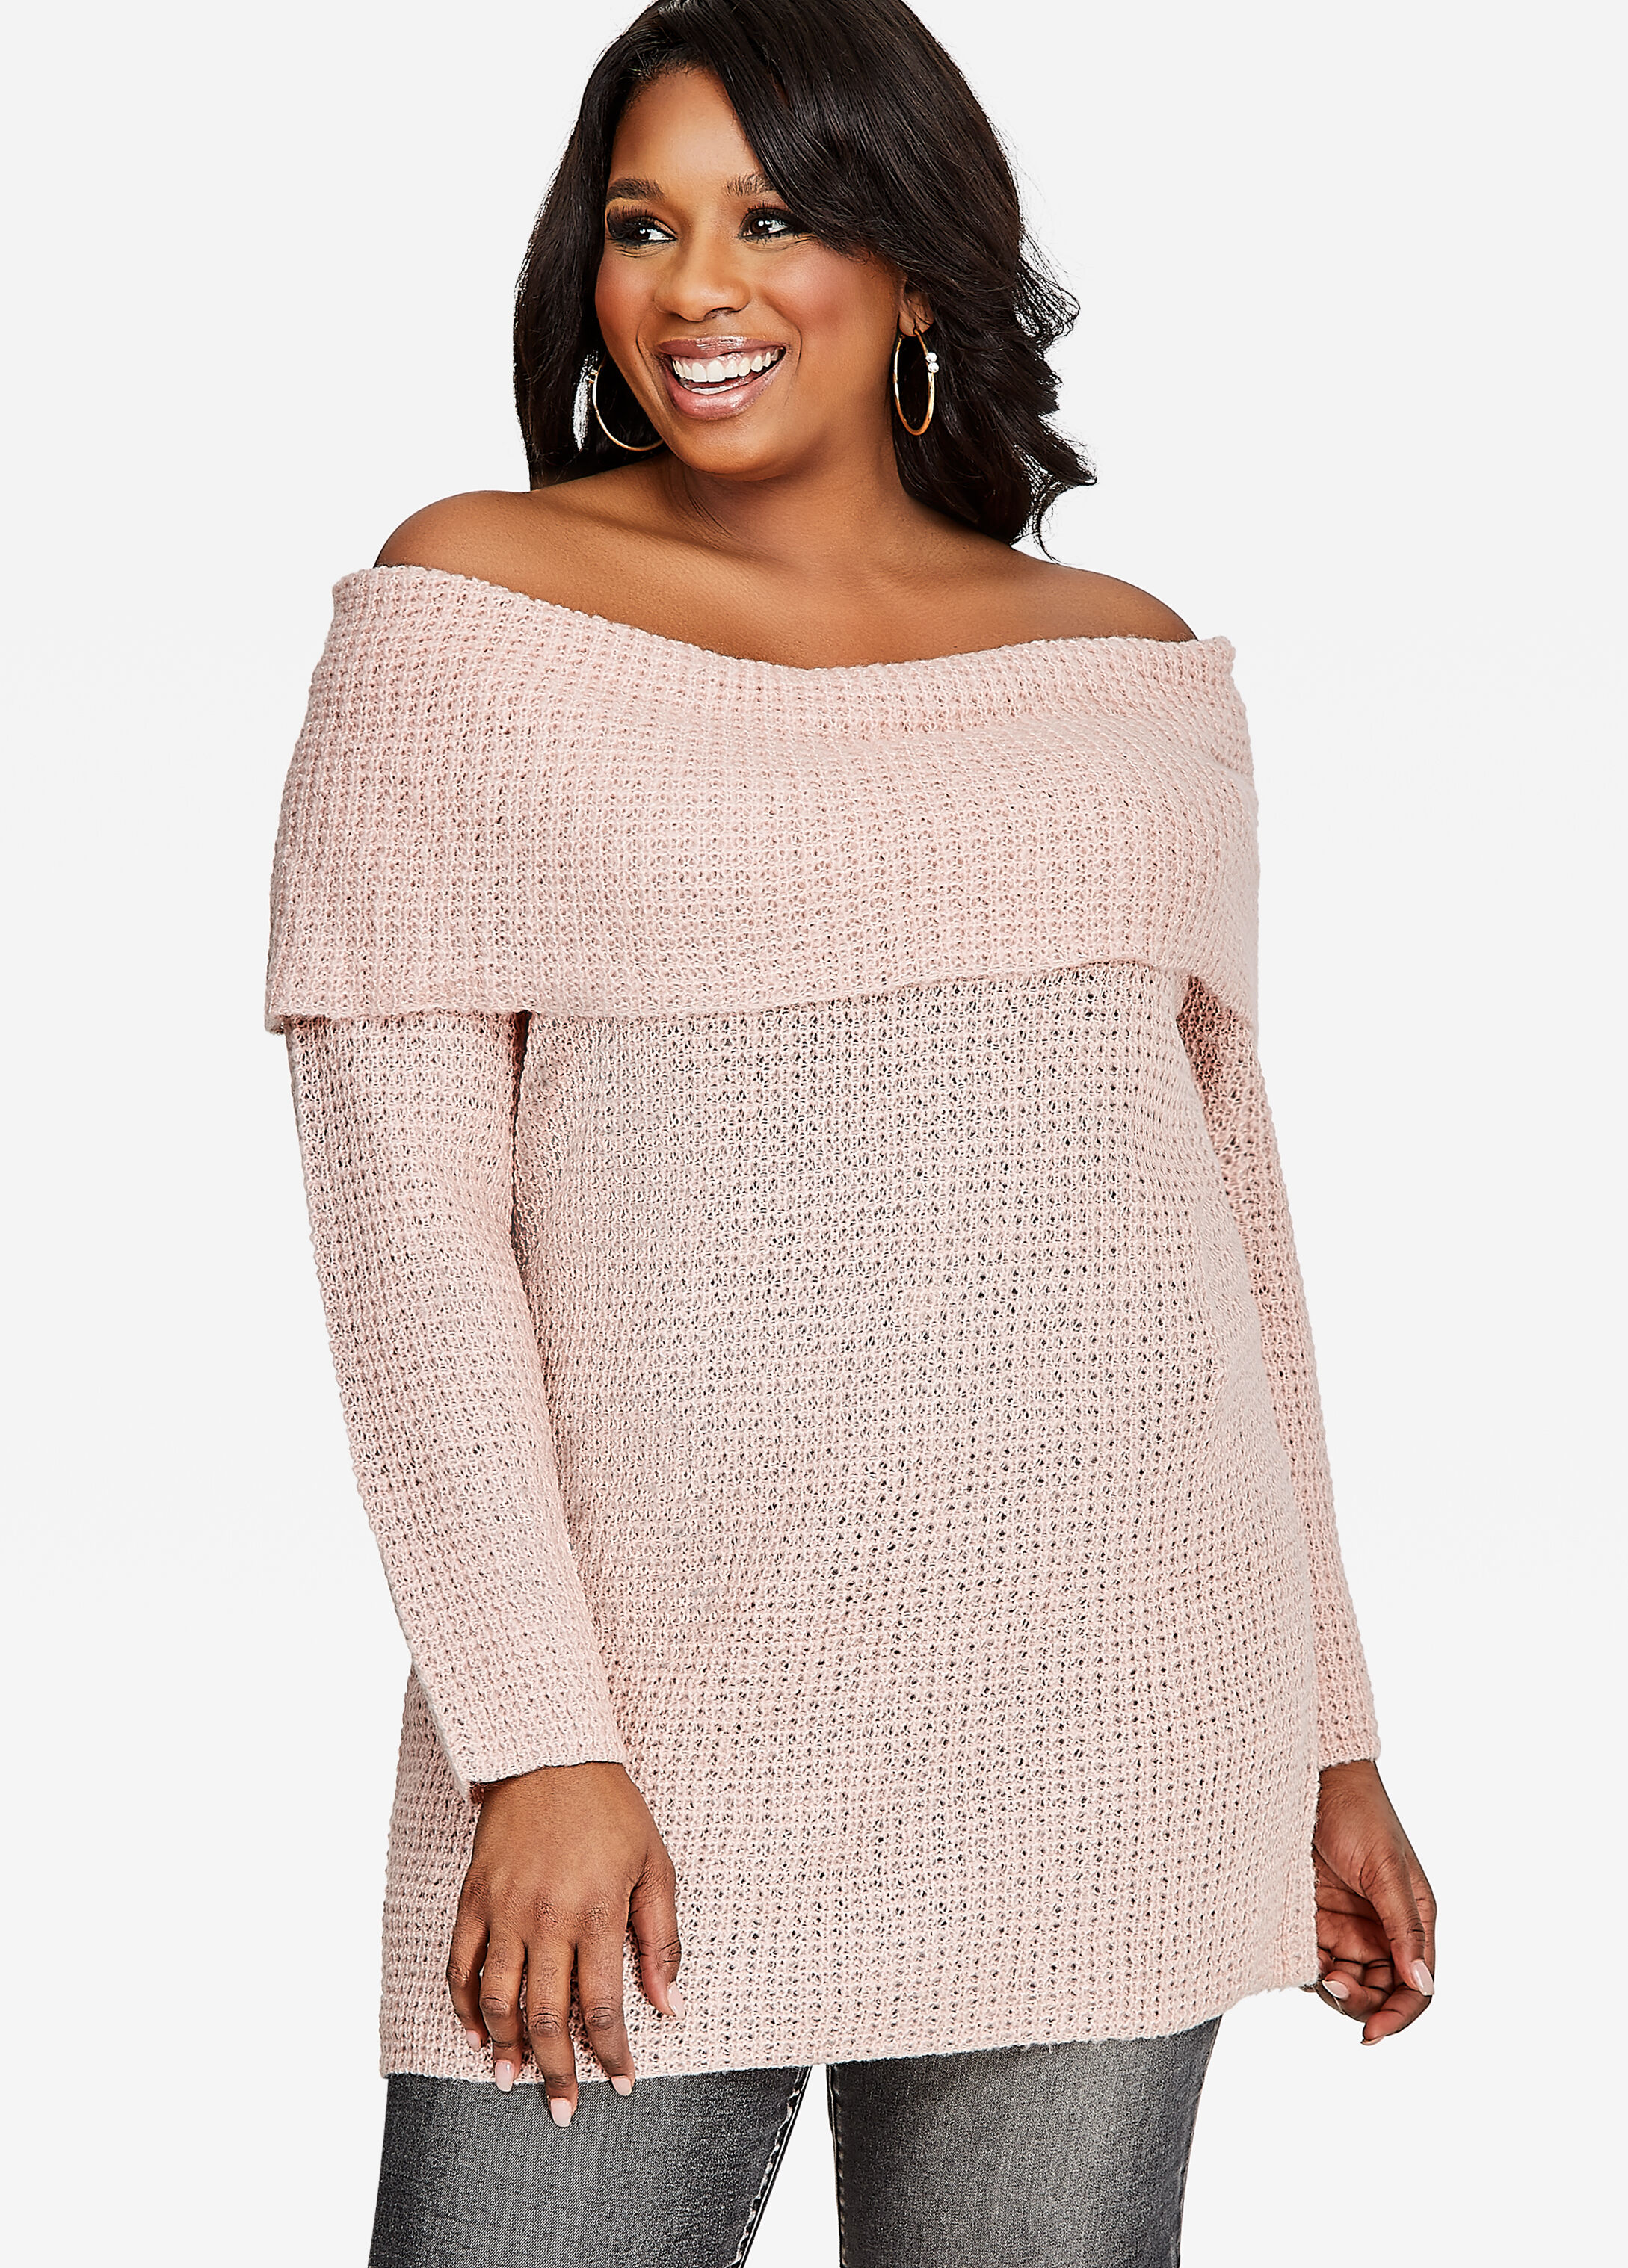 Plus Size Sweaters - Long Sleeve, Marilyn Tunic, Off-the-Shoulder ...